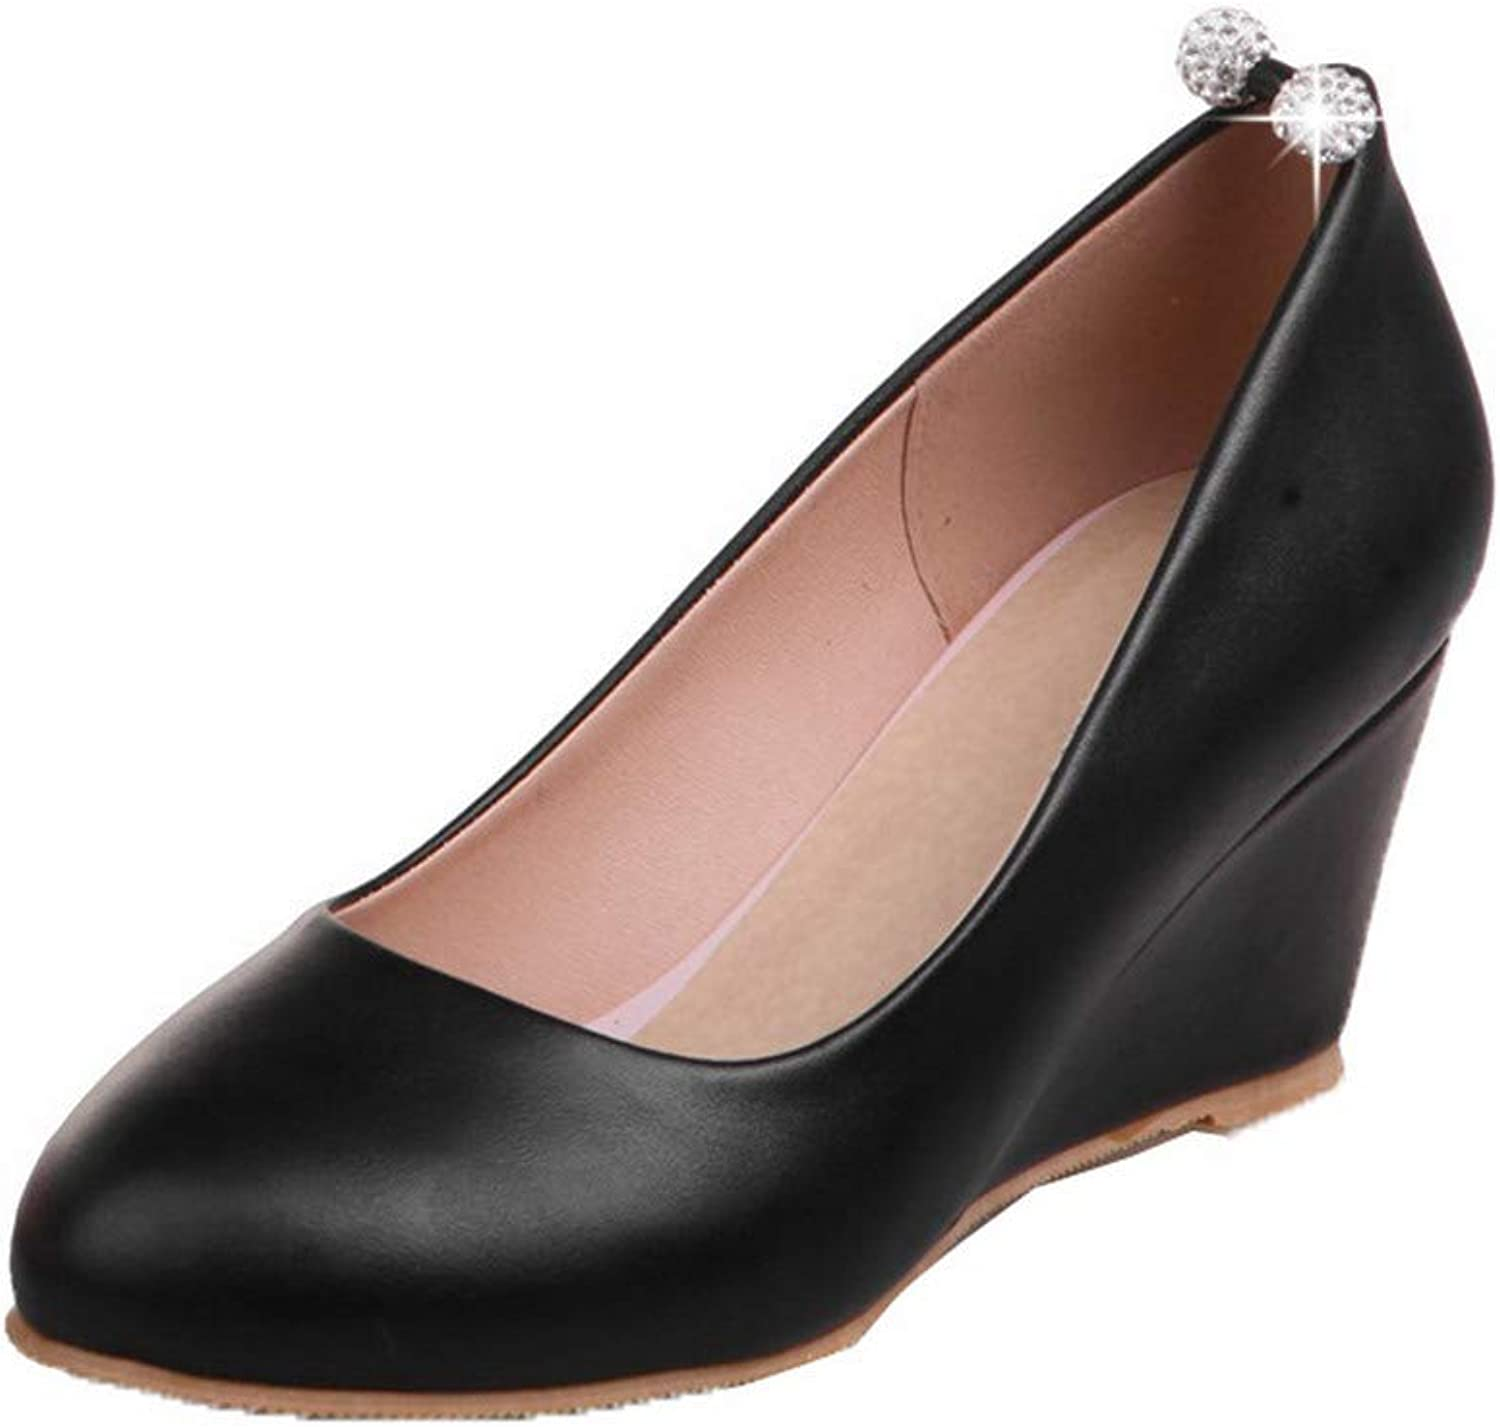 AmoonyFashion Women's Kitten-Heels PU Solid Pull-On Pumps-shoes,BUTDT005758